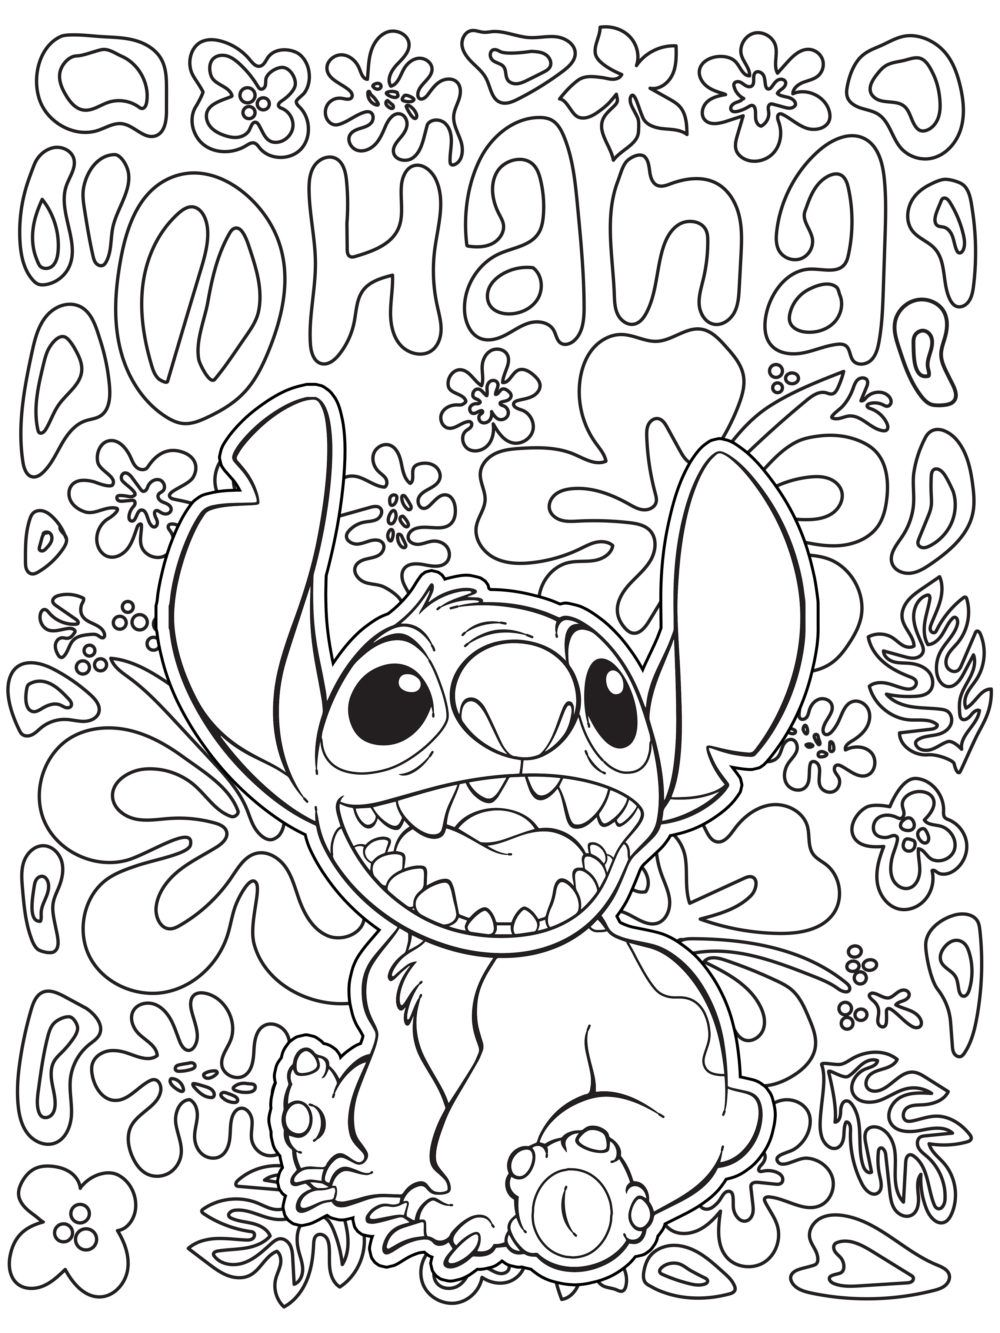 Celebrate National Coloring Book Day With | Disney | Dibujos para